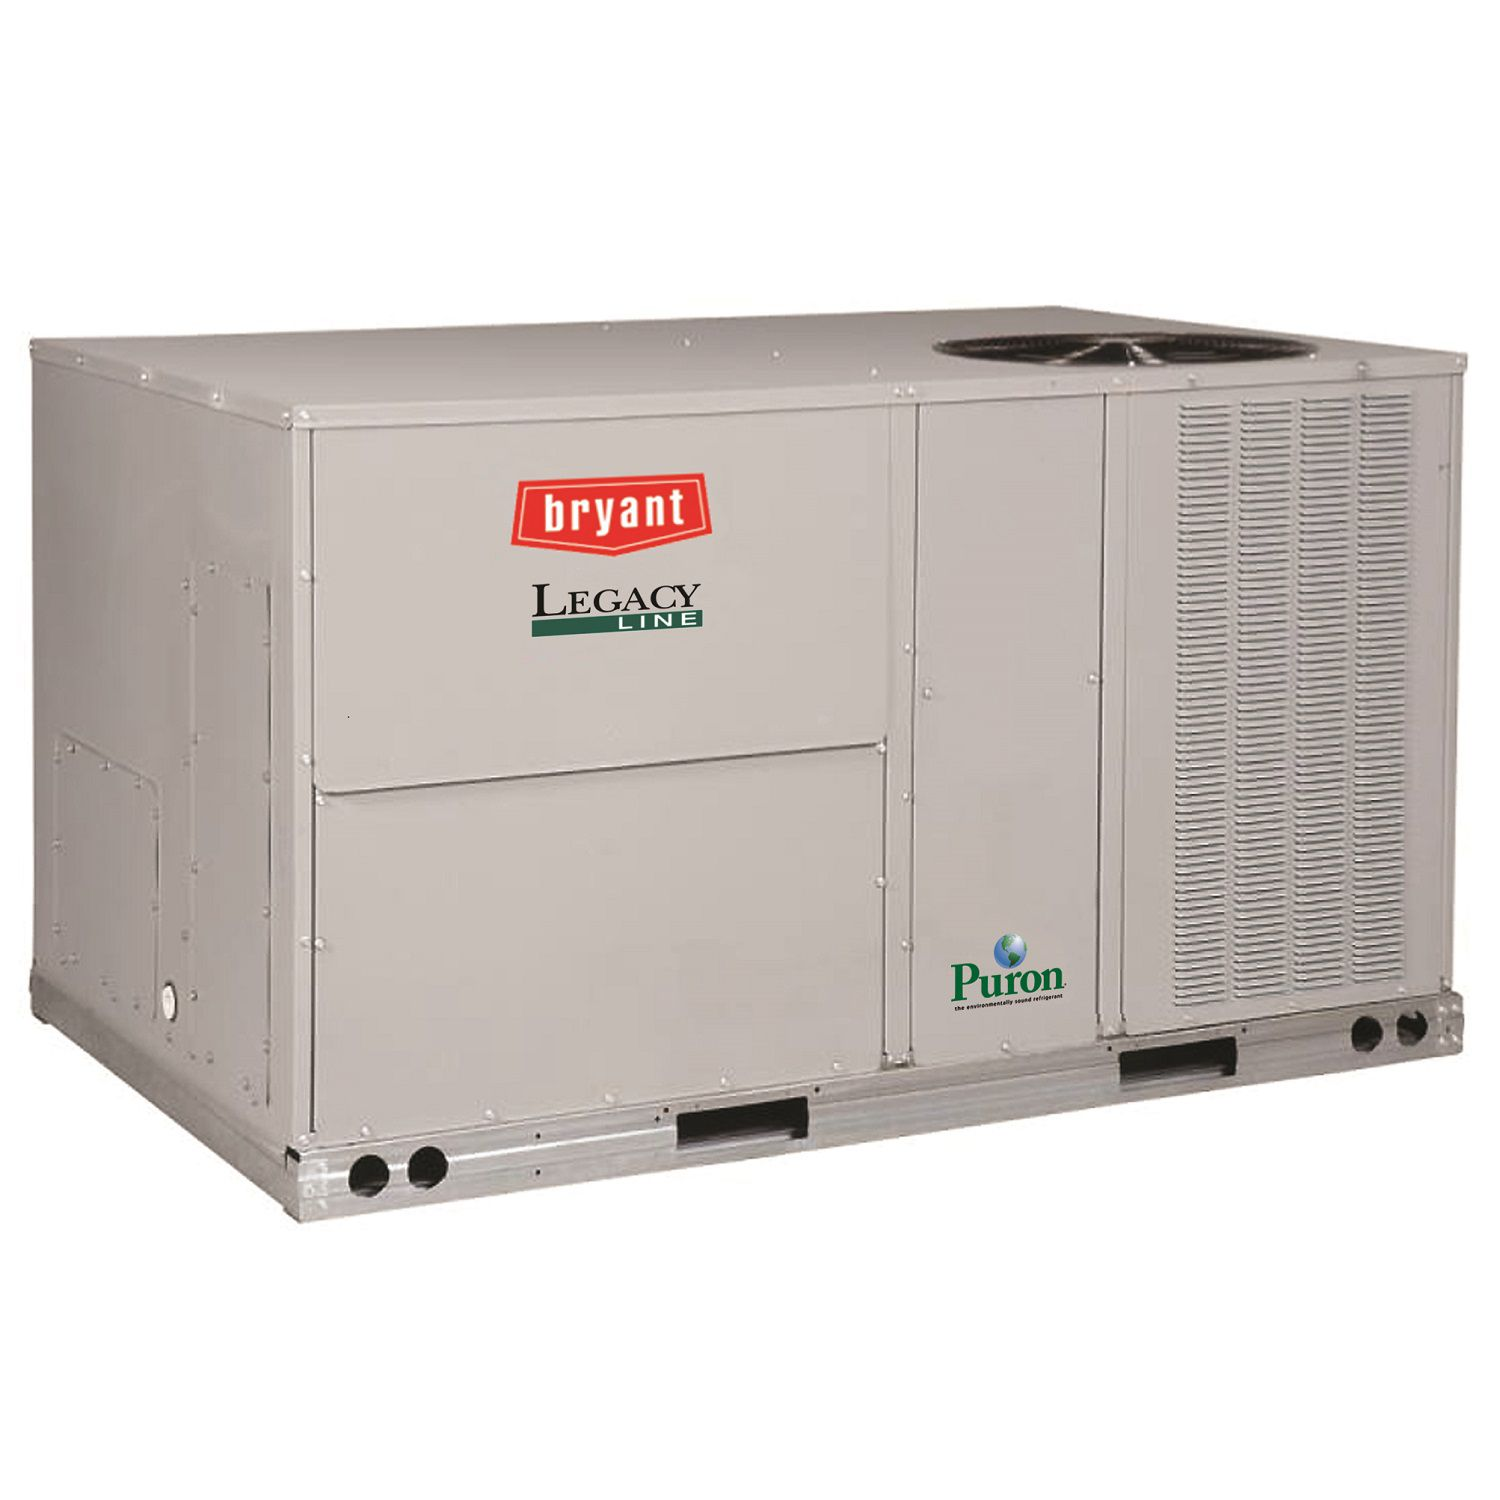 Bryant legacy 75 ton 180000 btuh packaged rooftop gas heat bryant legacy 75 ton 180000 btuh packaged rooftop gas heat electric cooling unit 2 stage 208230 3 60 sciox Image collections